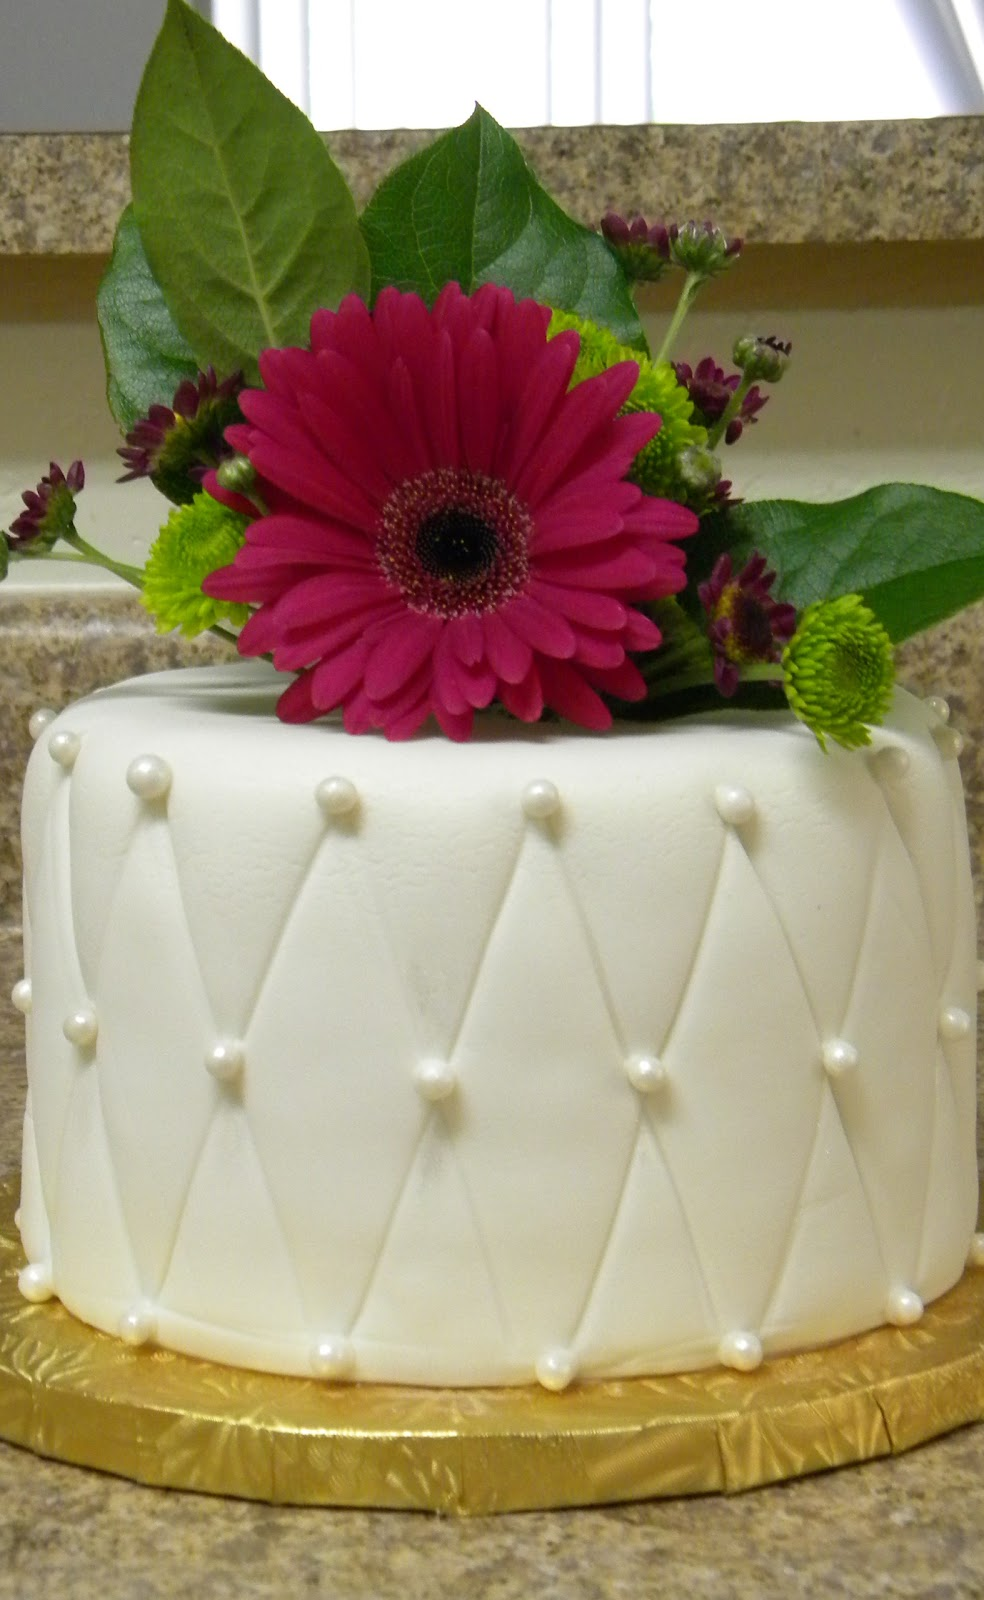 eating wedding cake on 1 year anniversary originalcinn the perils of frozen wedding cake 13877